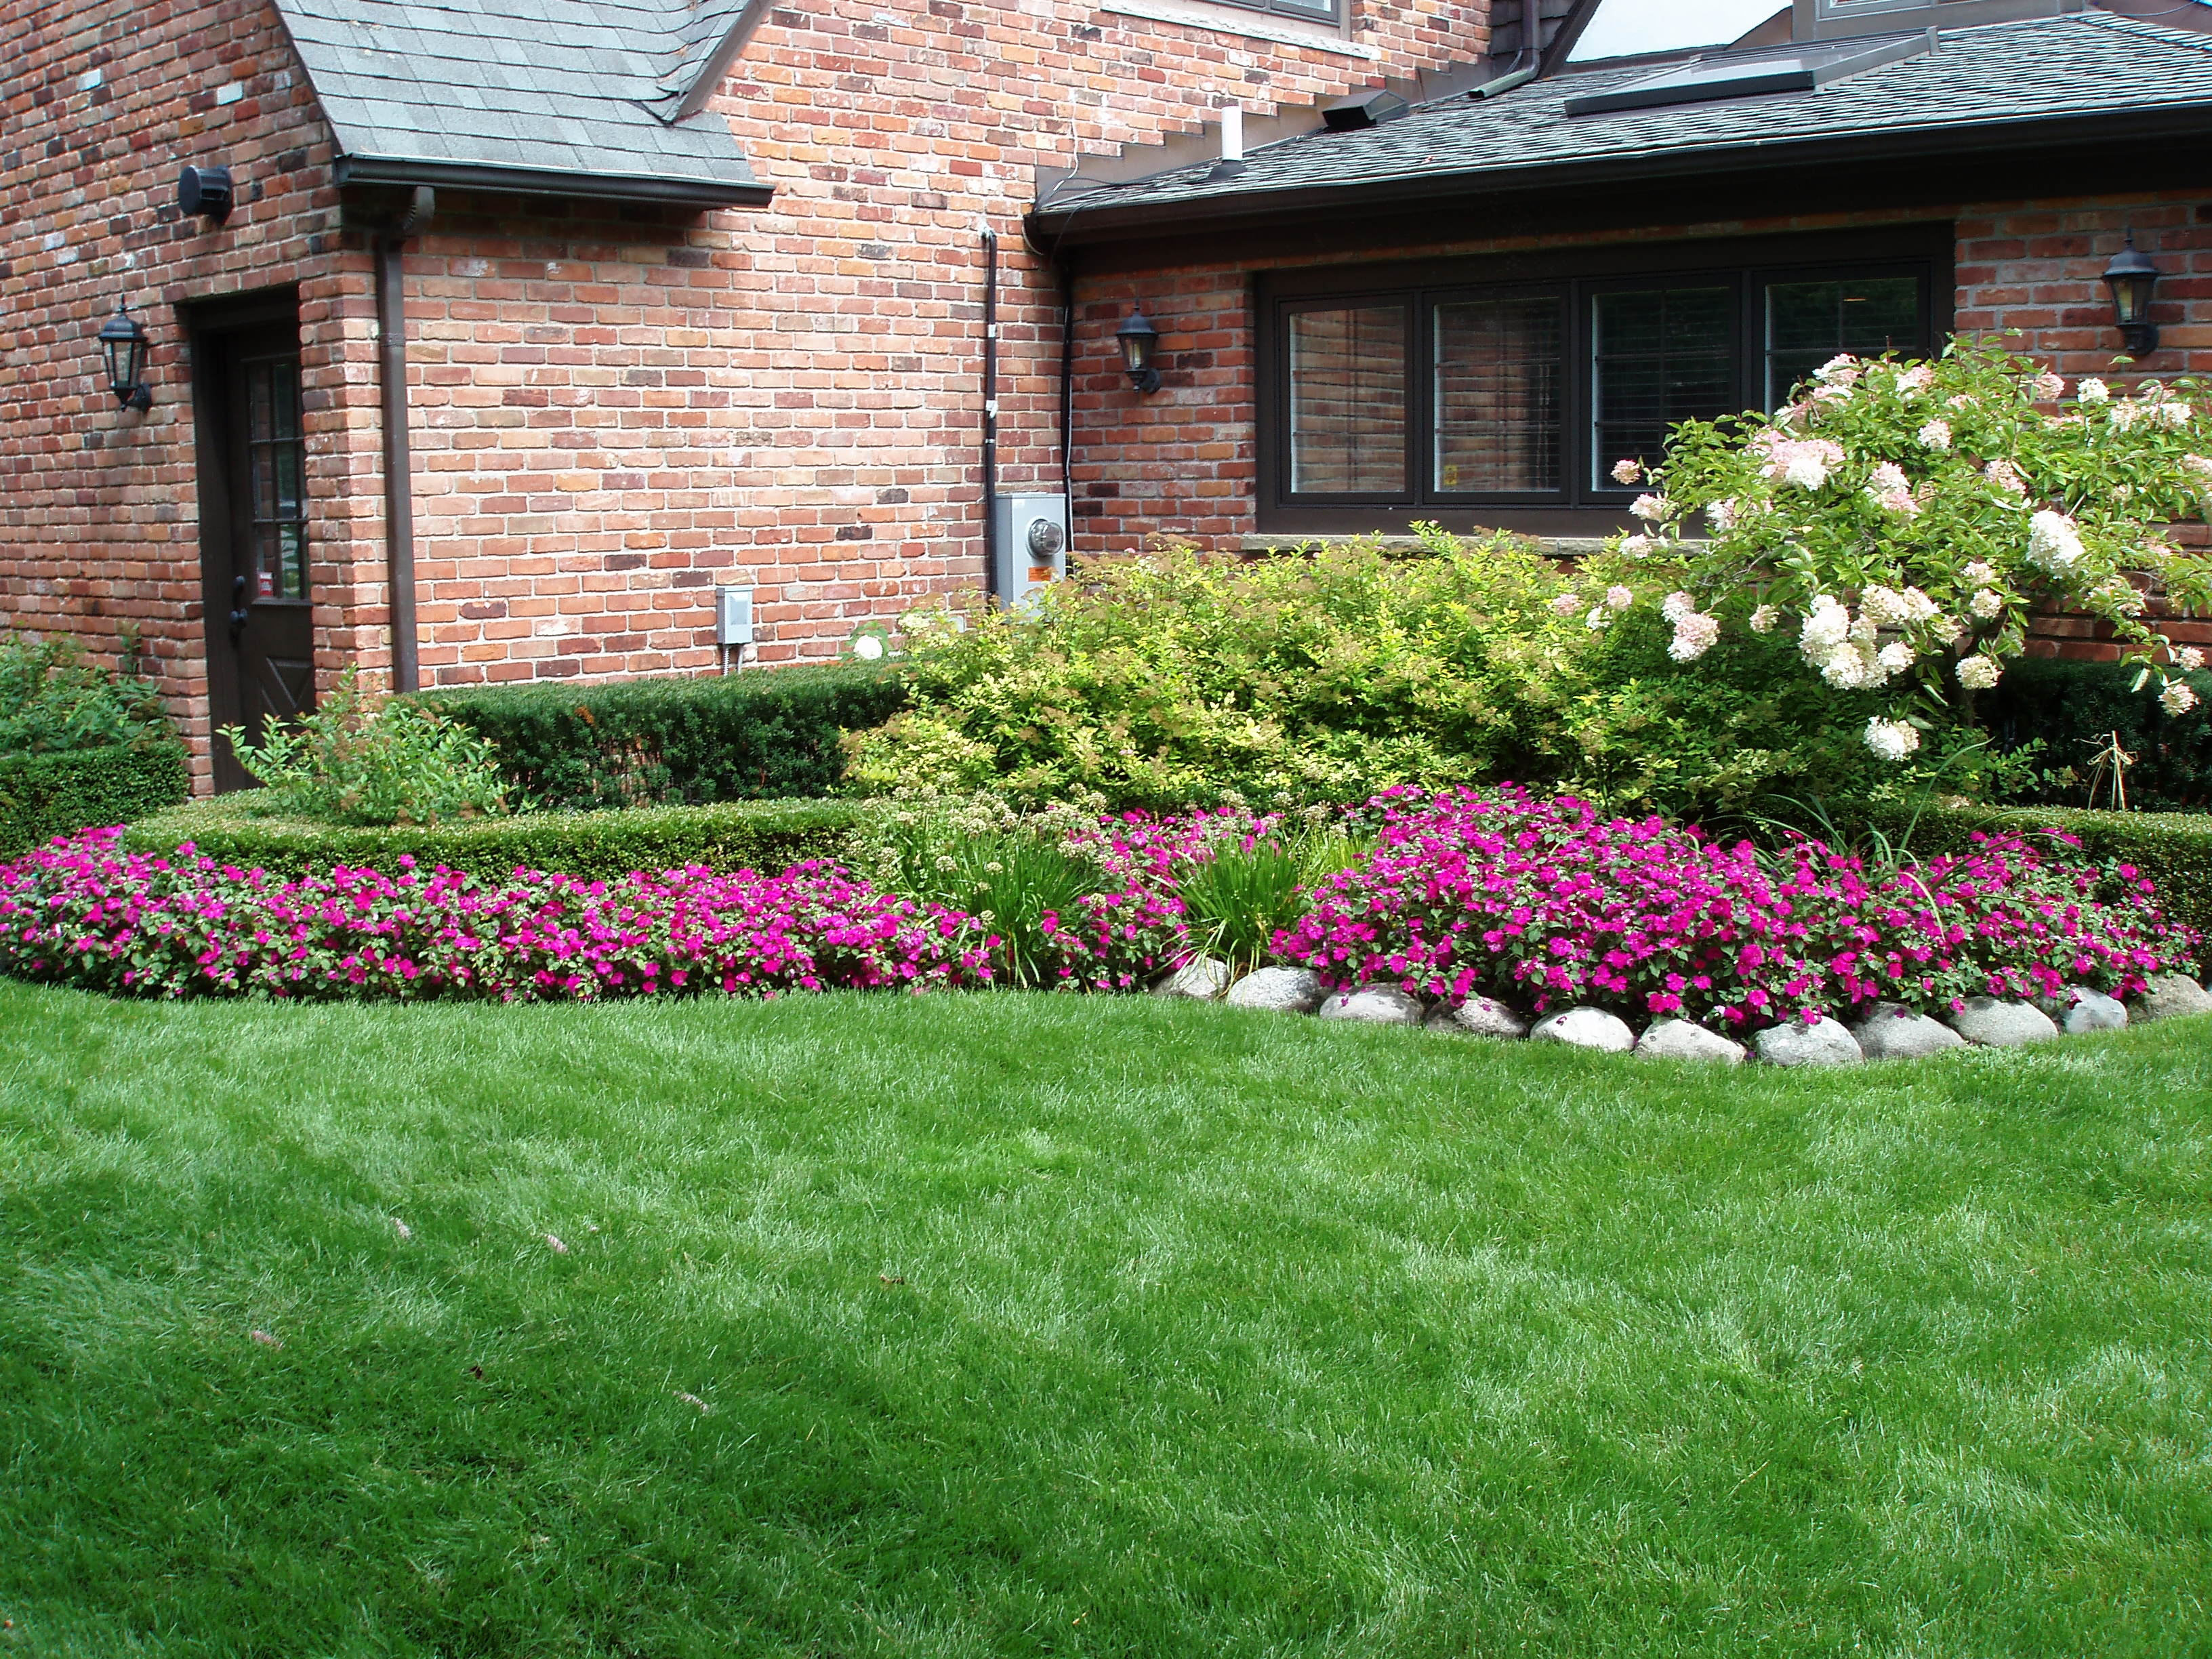 Landscaping total lawn care inc full lawn maintenance for Front lawn landscaping